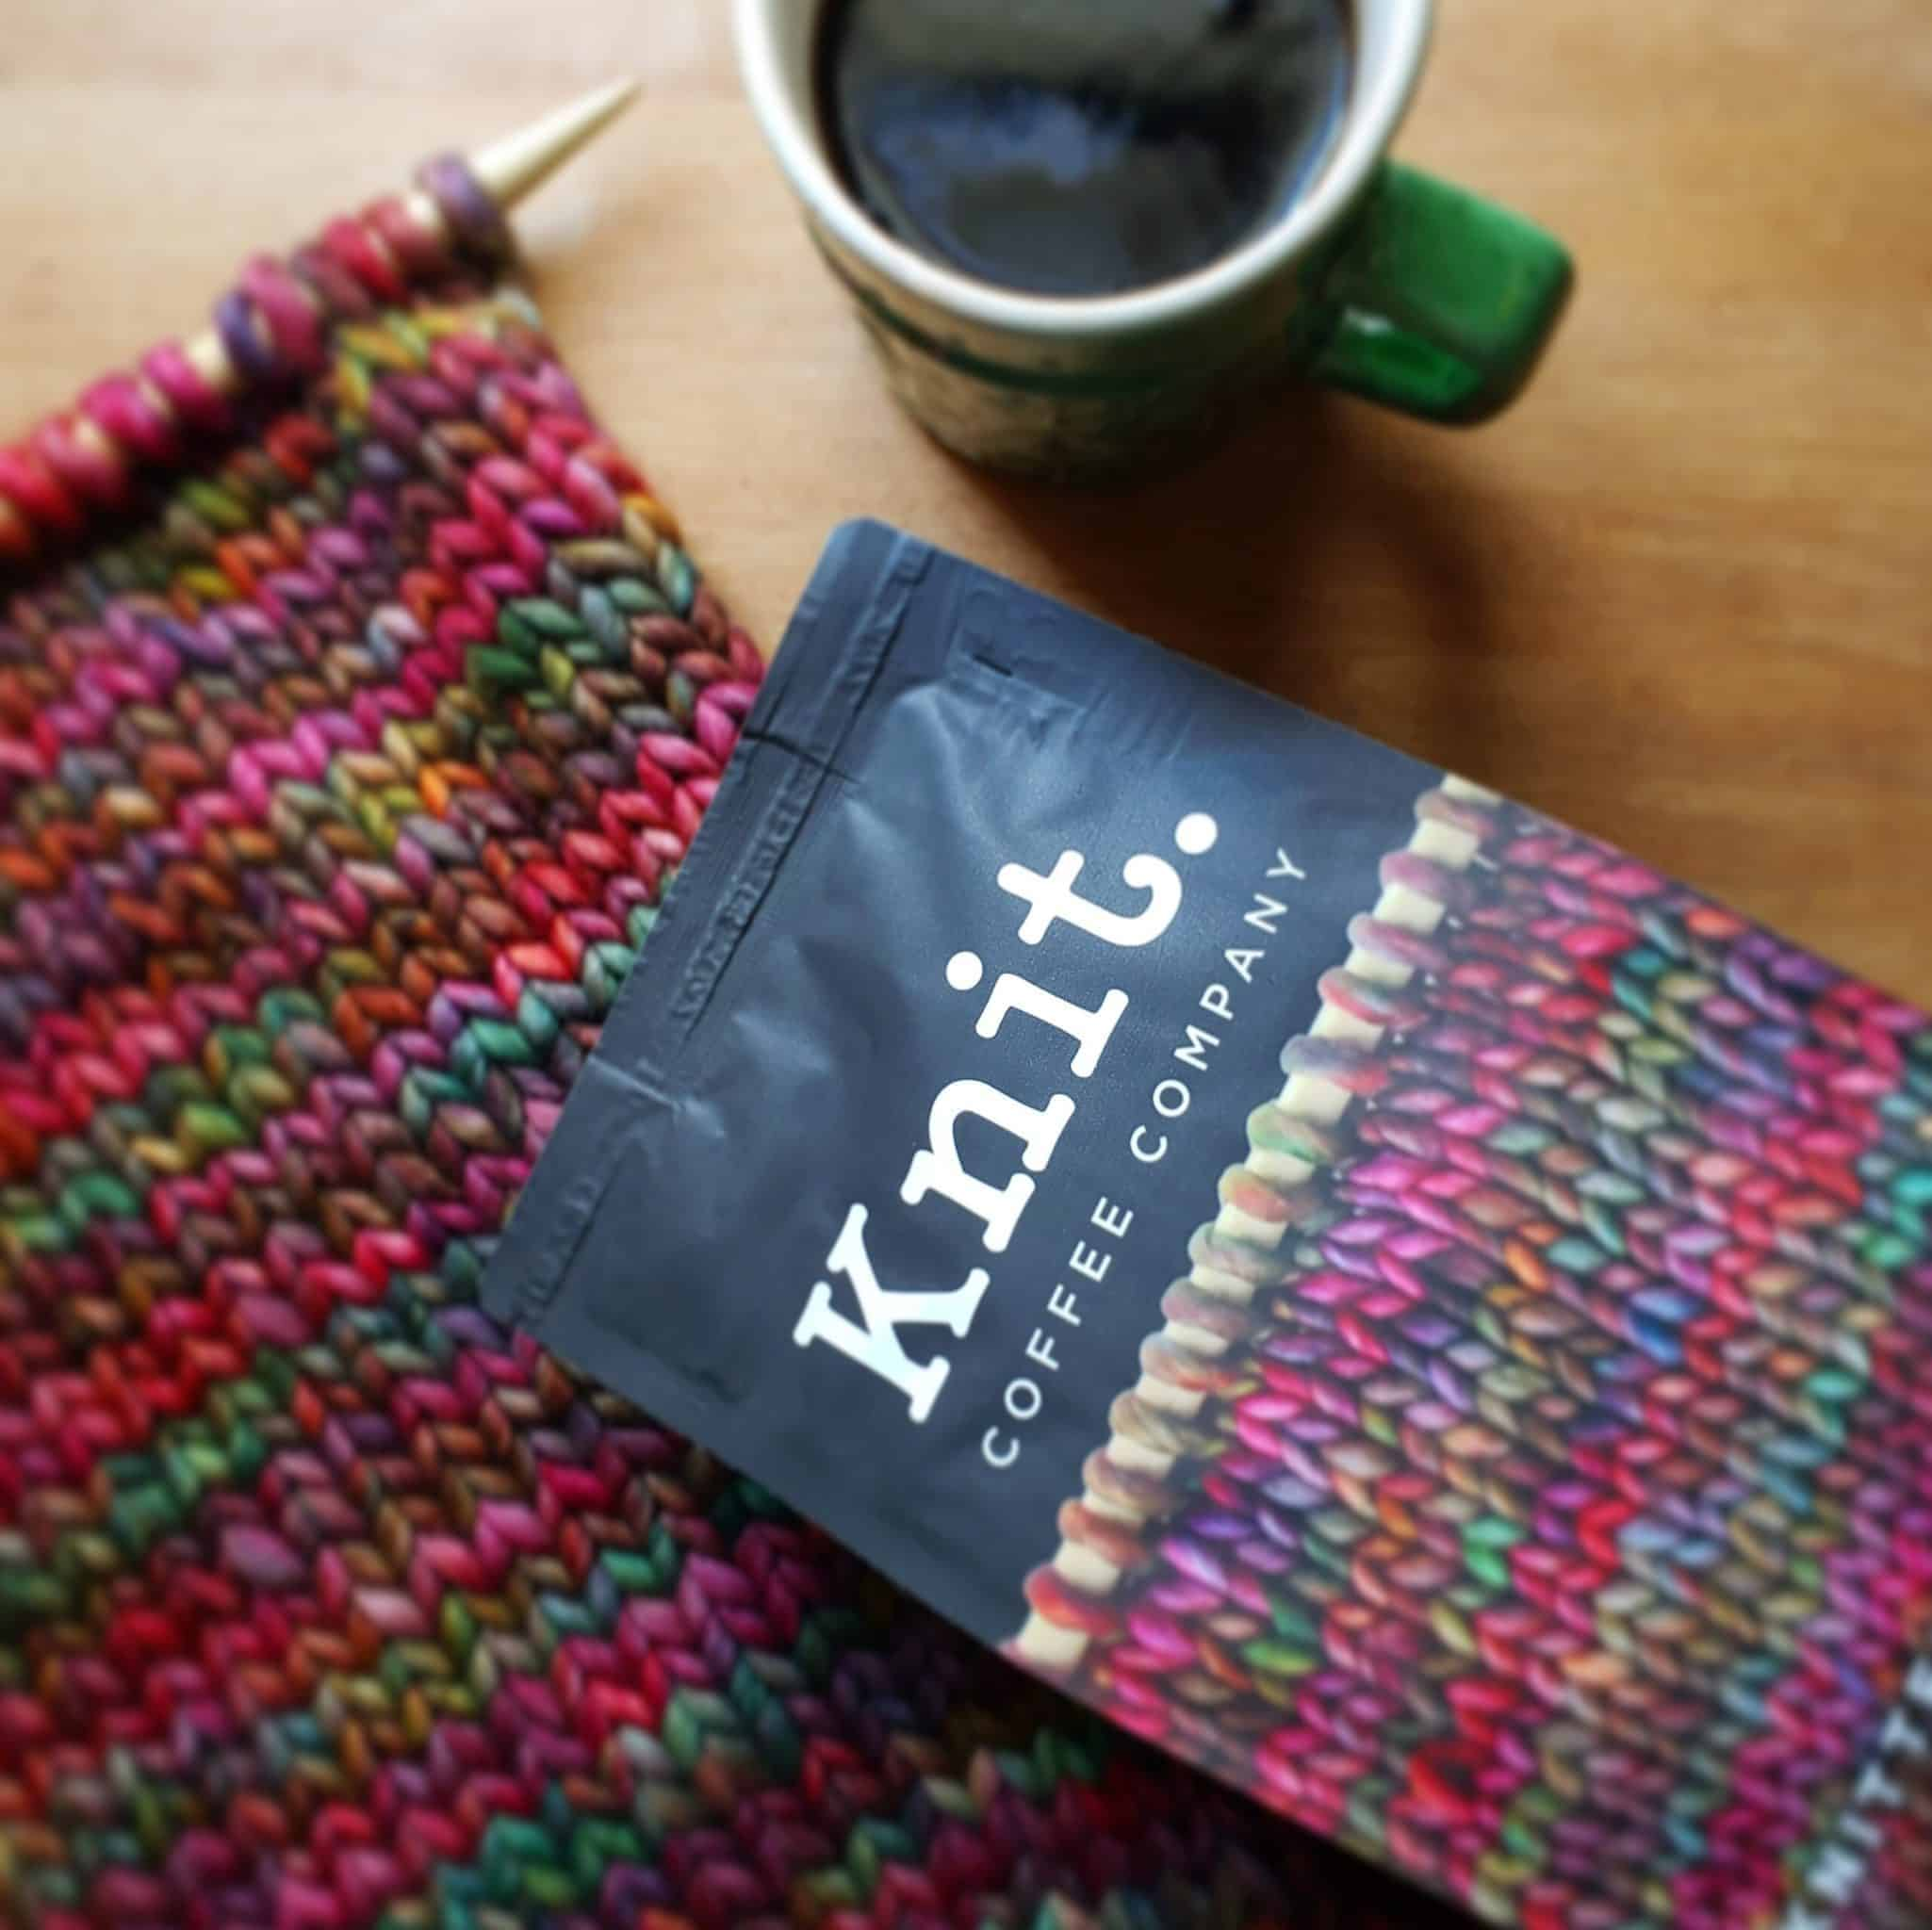 A black bag with the word Knit next to a cup of coffee and a red, green and pink knitting on a needle.